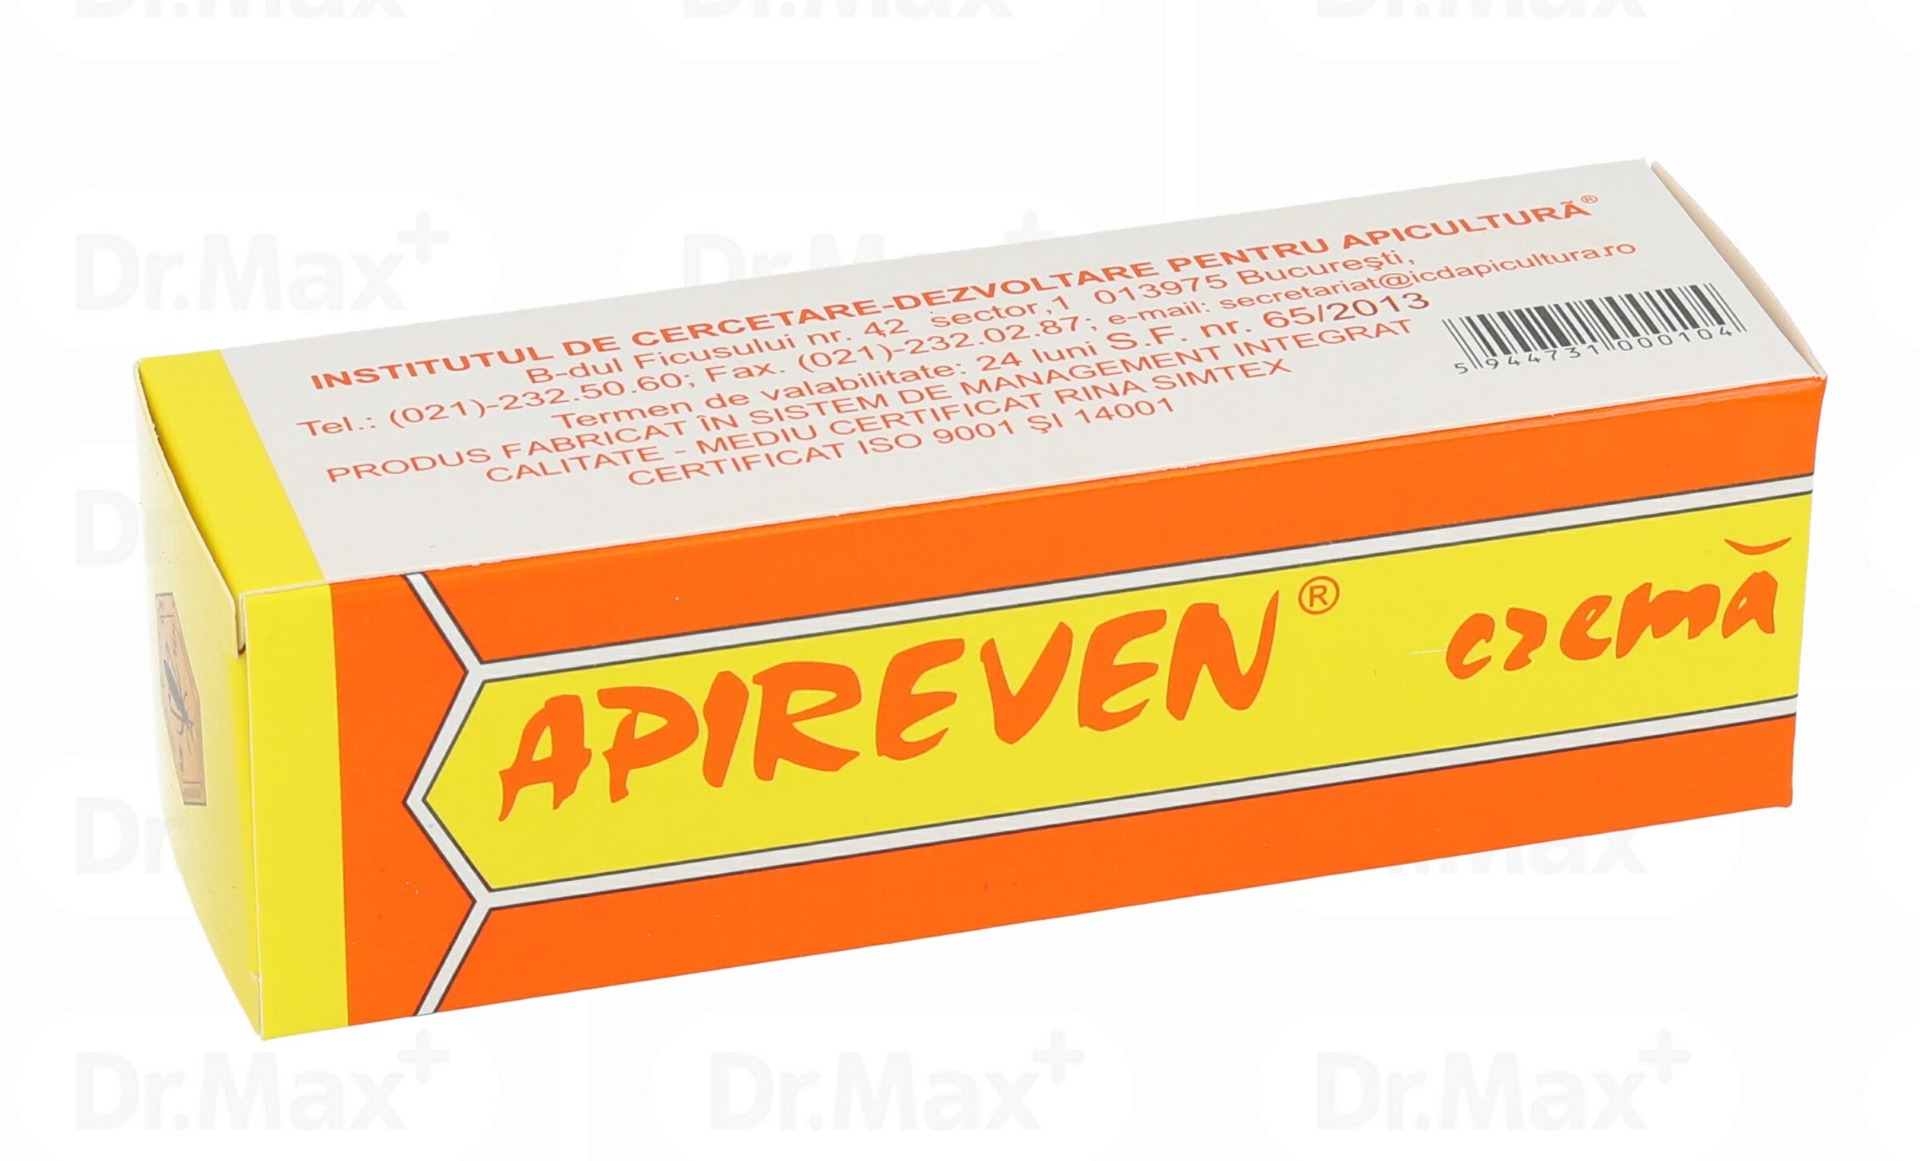 Apireven crema, 30 g, Institutul Apicol imagine produs 2021